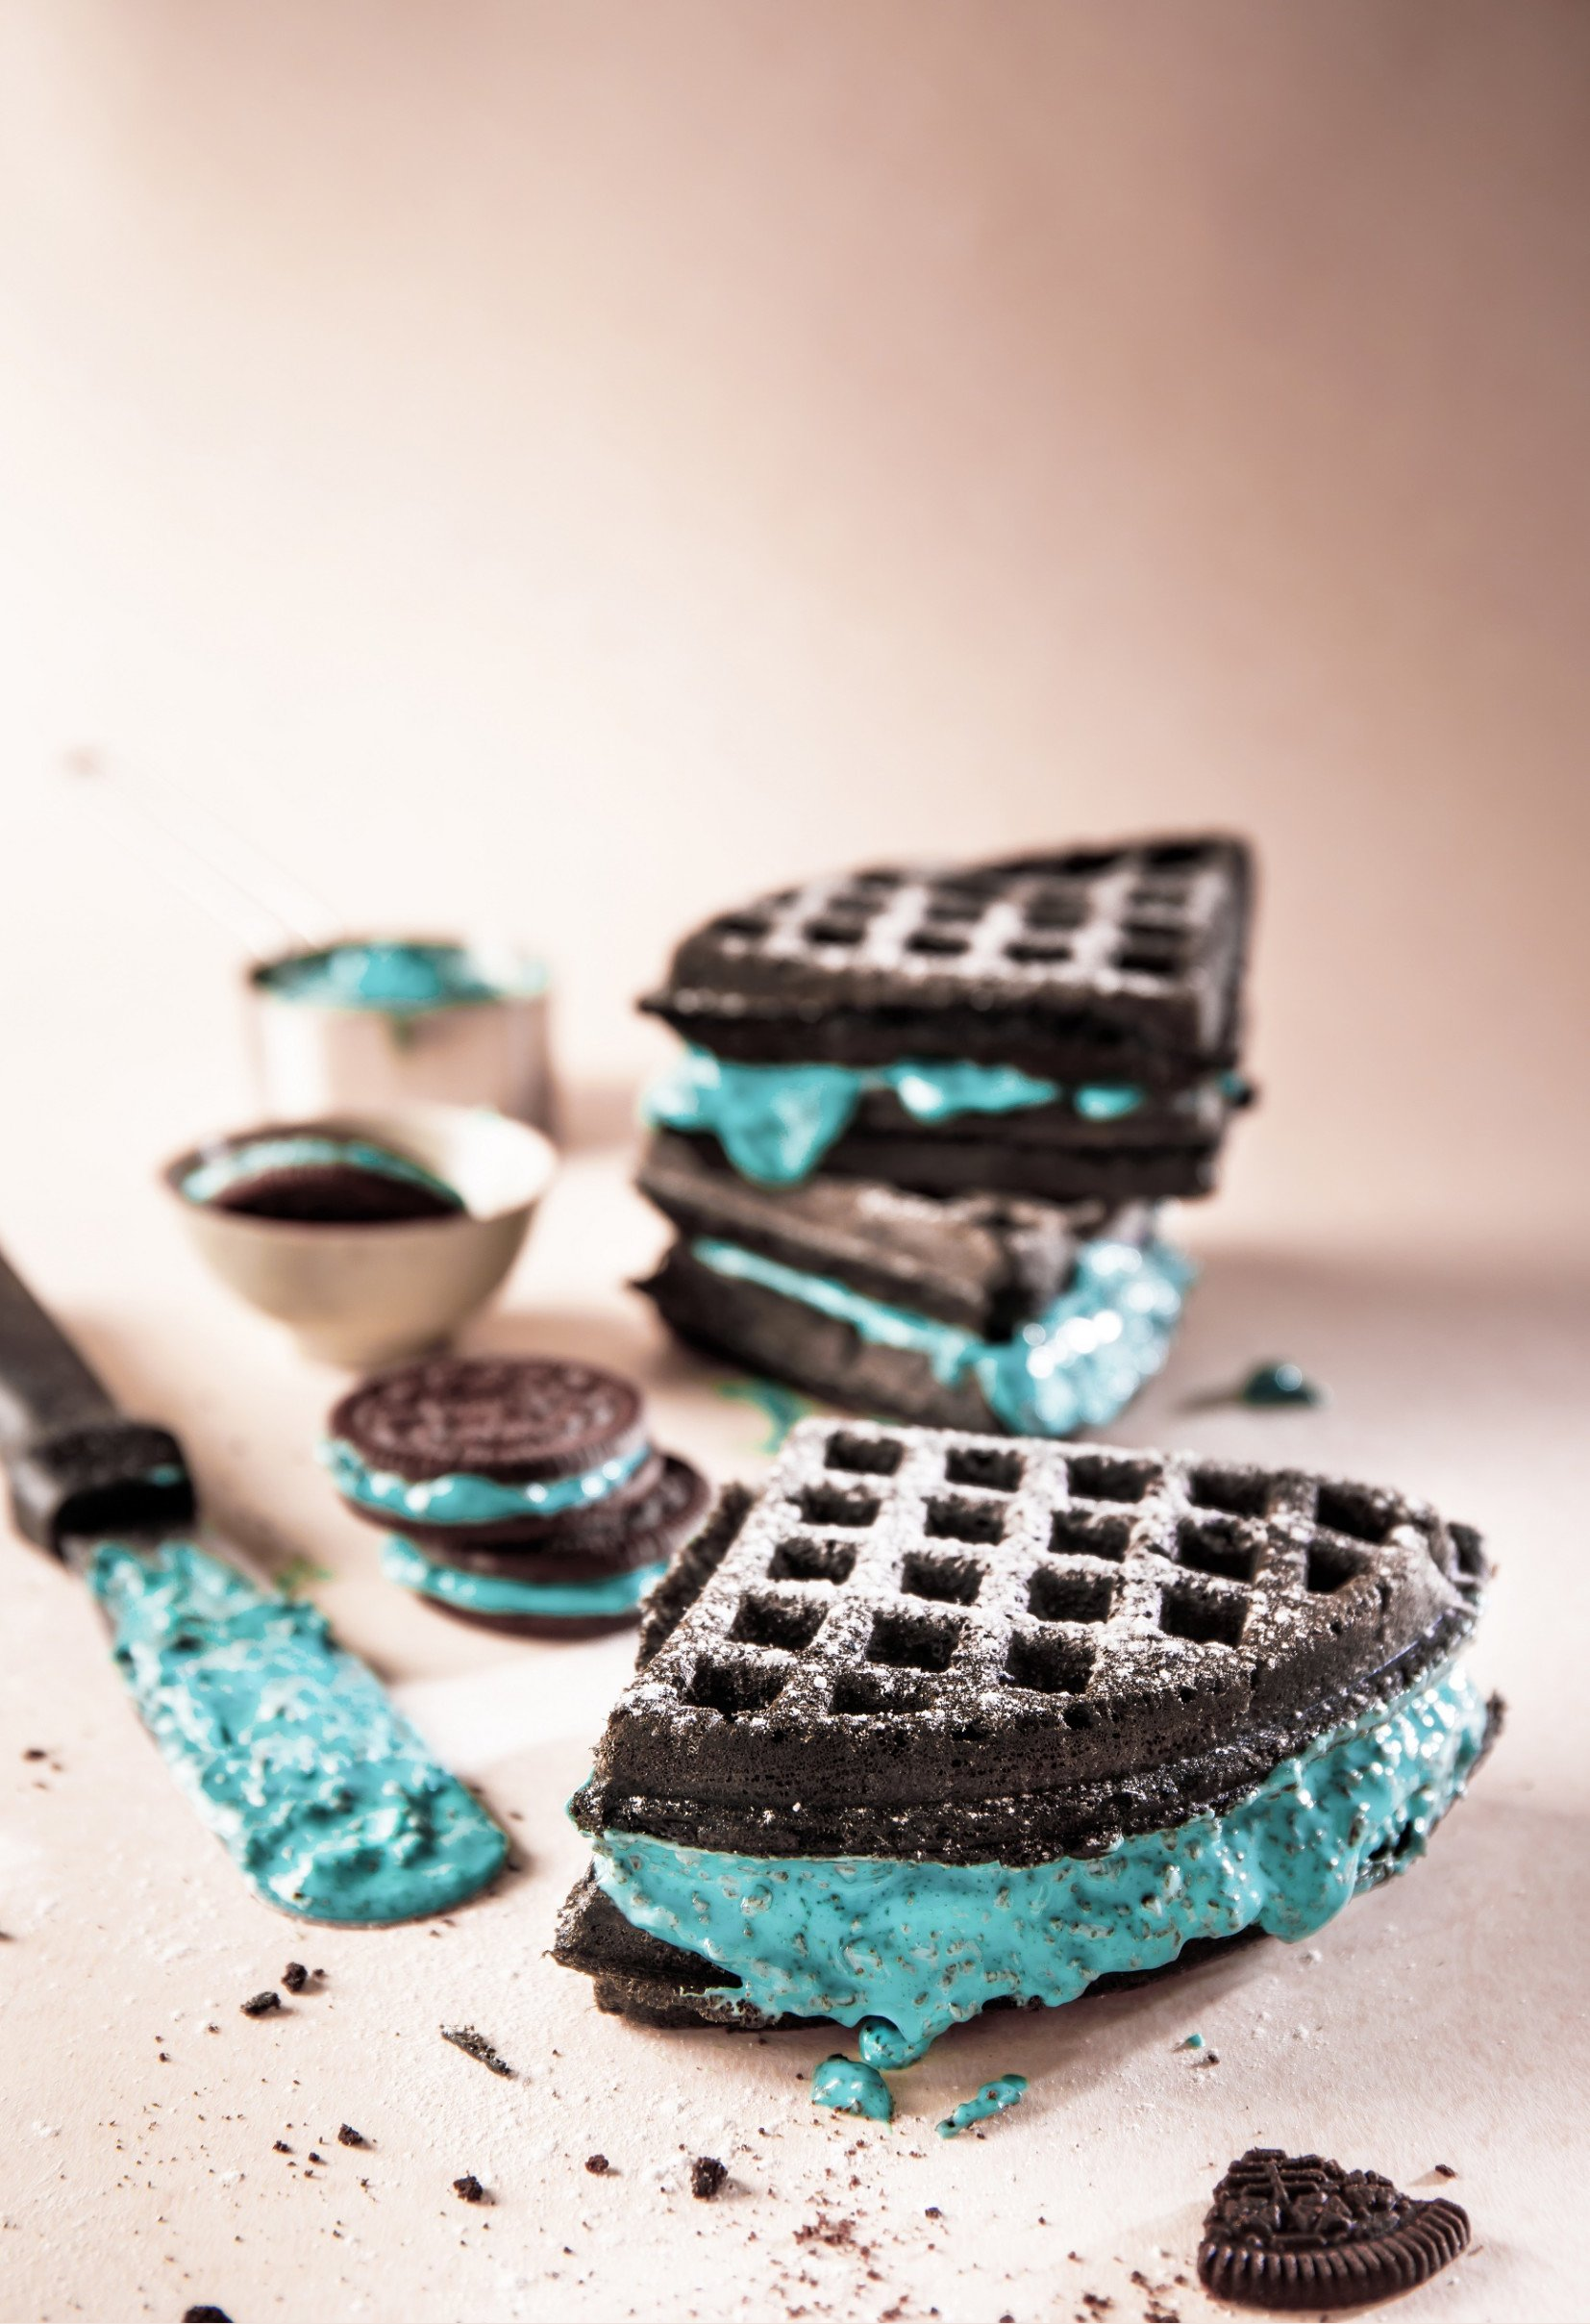 The Belgian Waffle Co's 'Kiki n Cream' Waffles and Pancakes are a Cookies N' Cream Dream Come True!